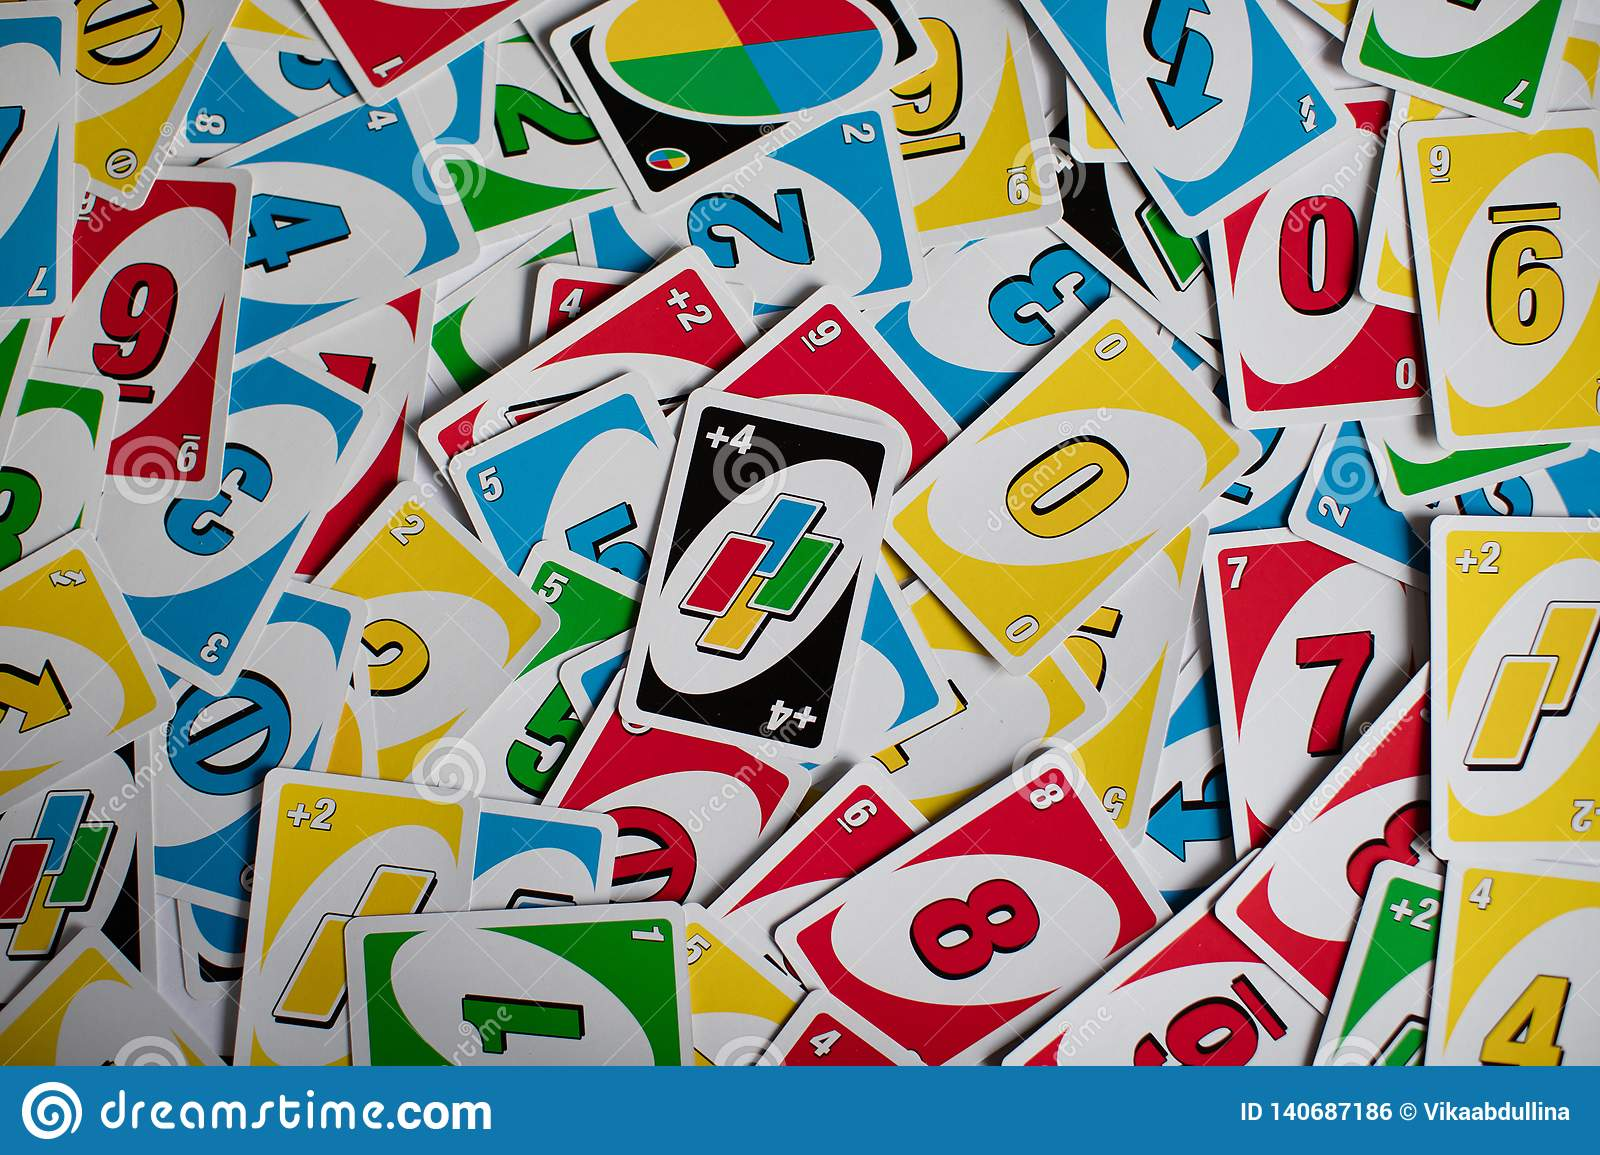 Deck Of Uno Game Cards Scattered All Over On A Table